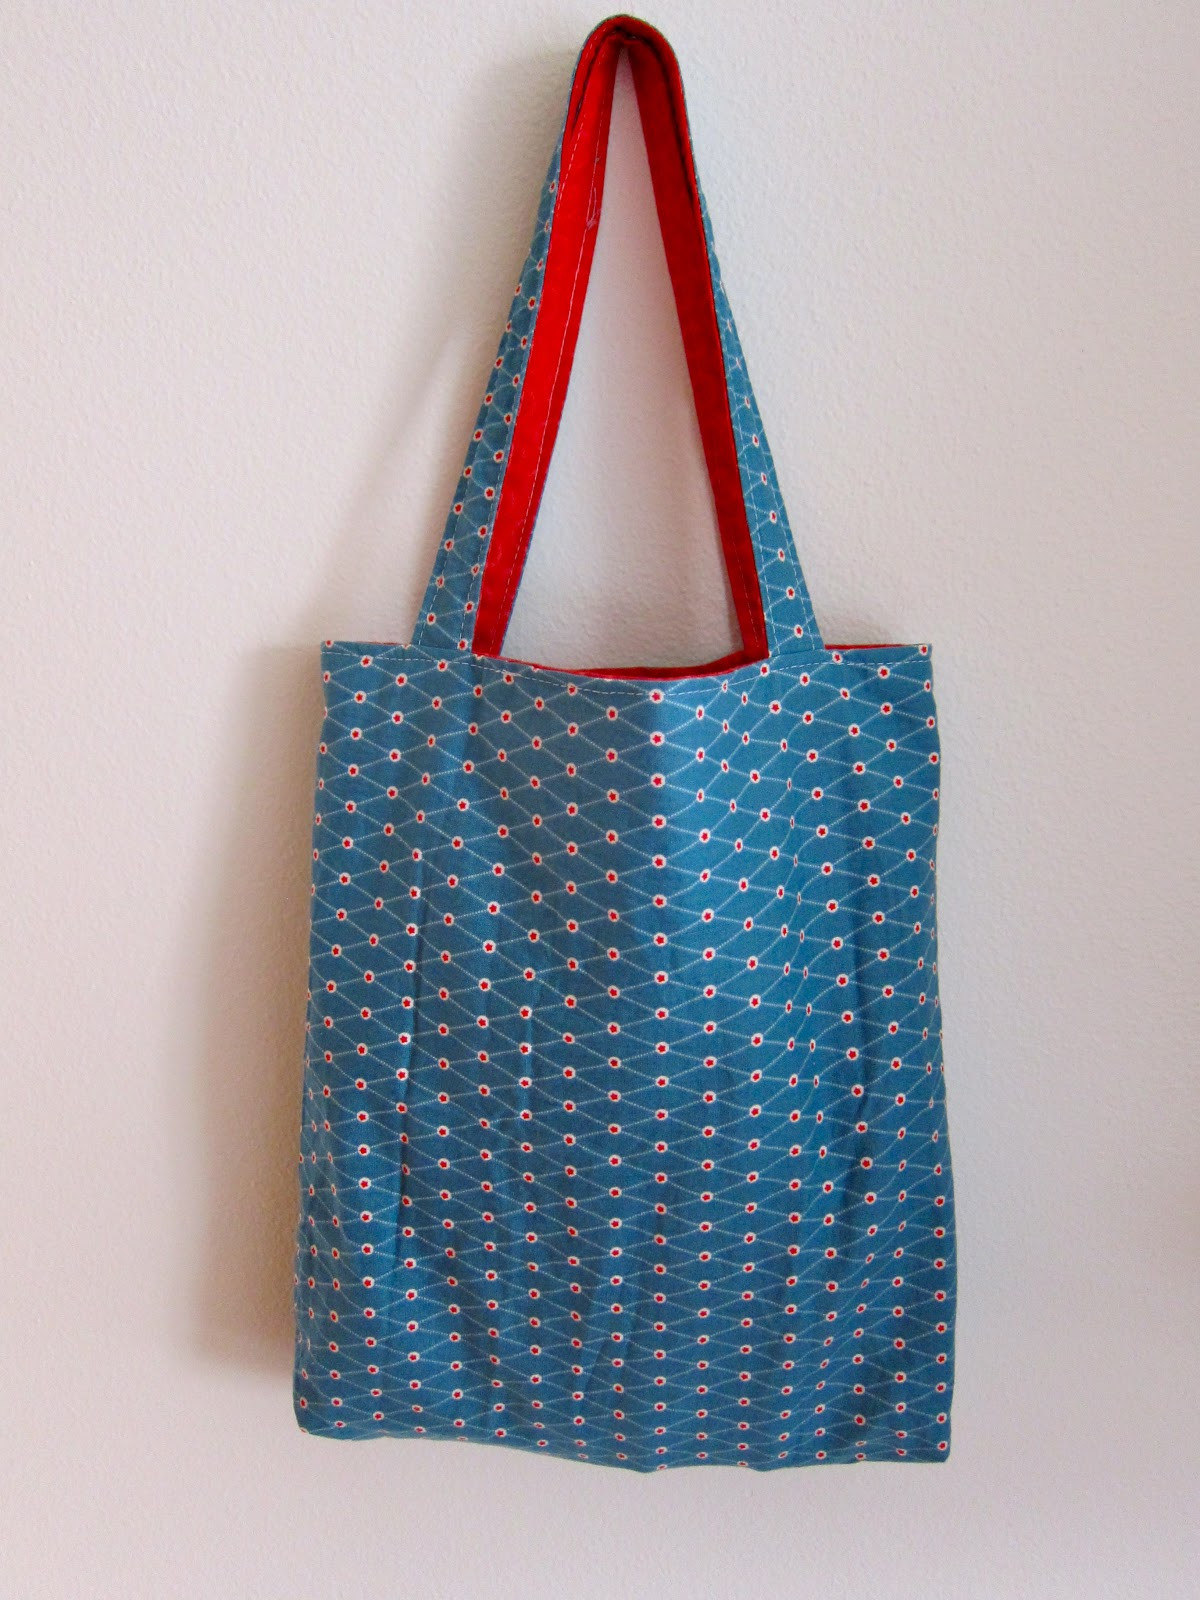 Tote Bag Pattern Inspirational From Blank Pages Mini tote Bag A Pattern Re Write Pdf Of Beautiful 46 Ideas tote Bag Pattern